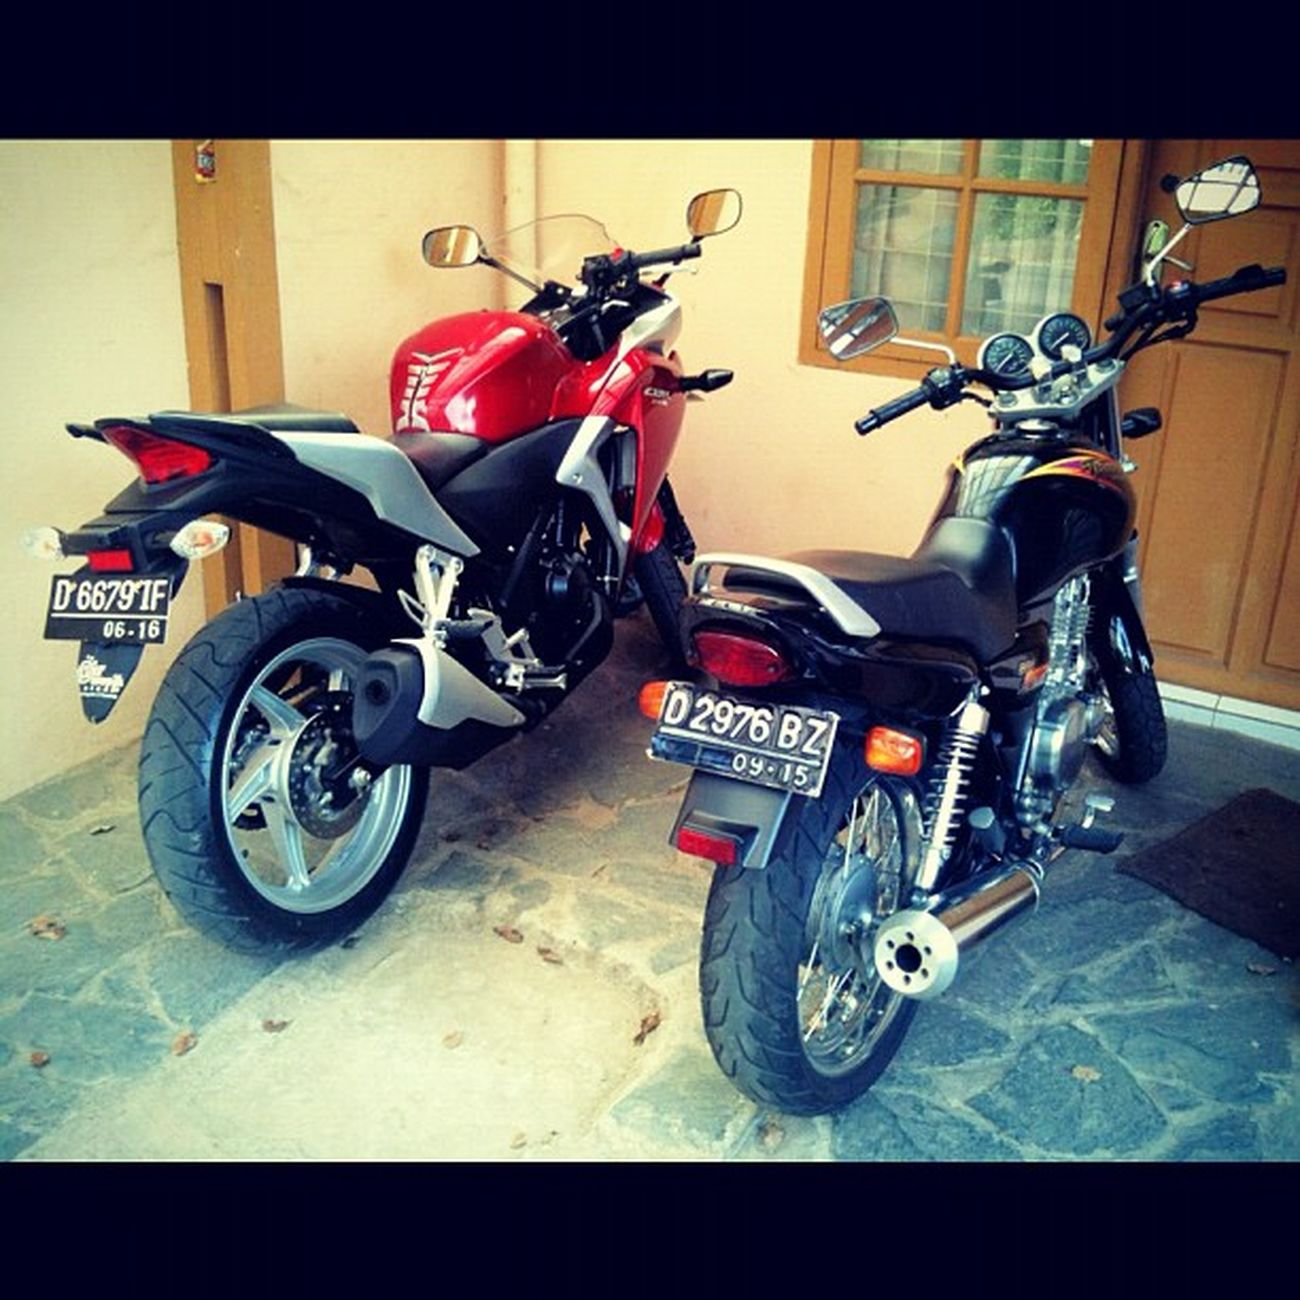 Iphonesia Bike Gsx250 CBR250